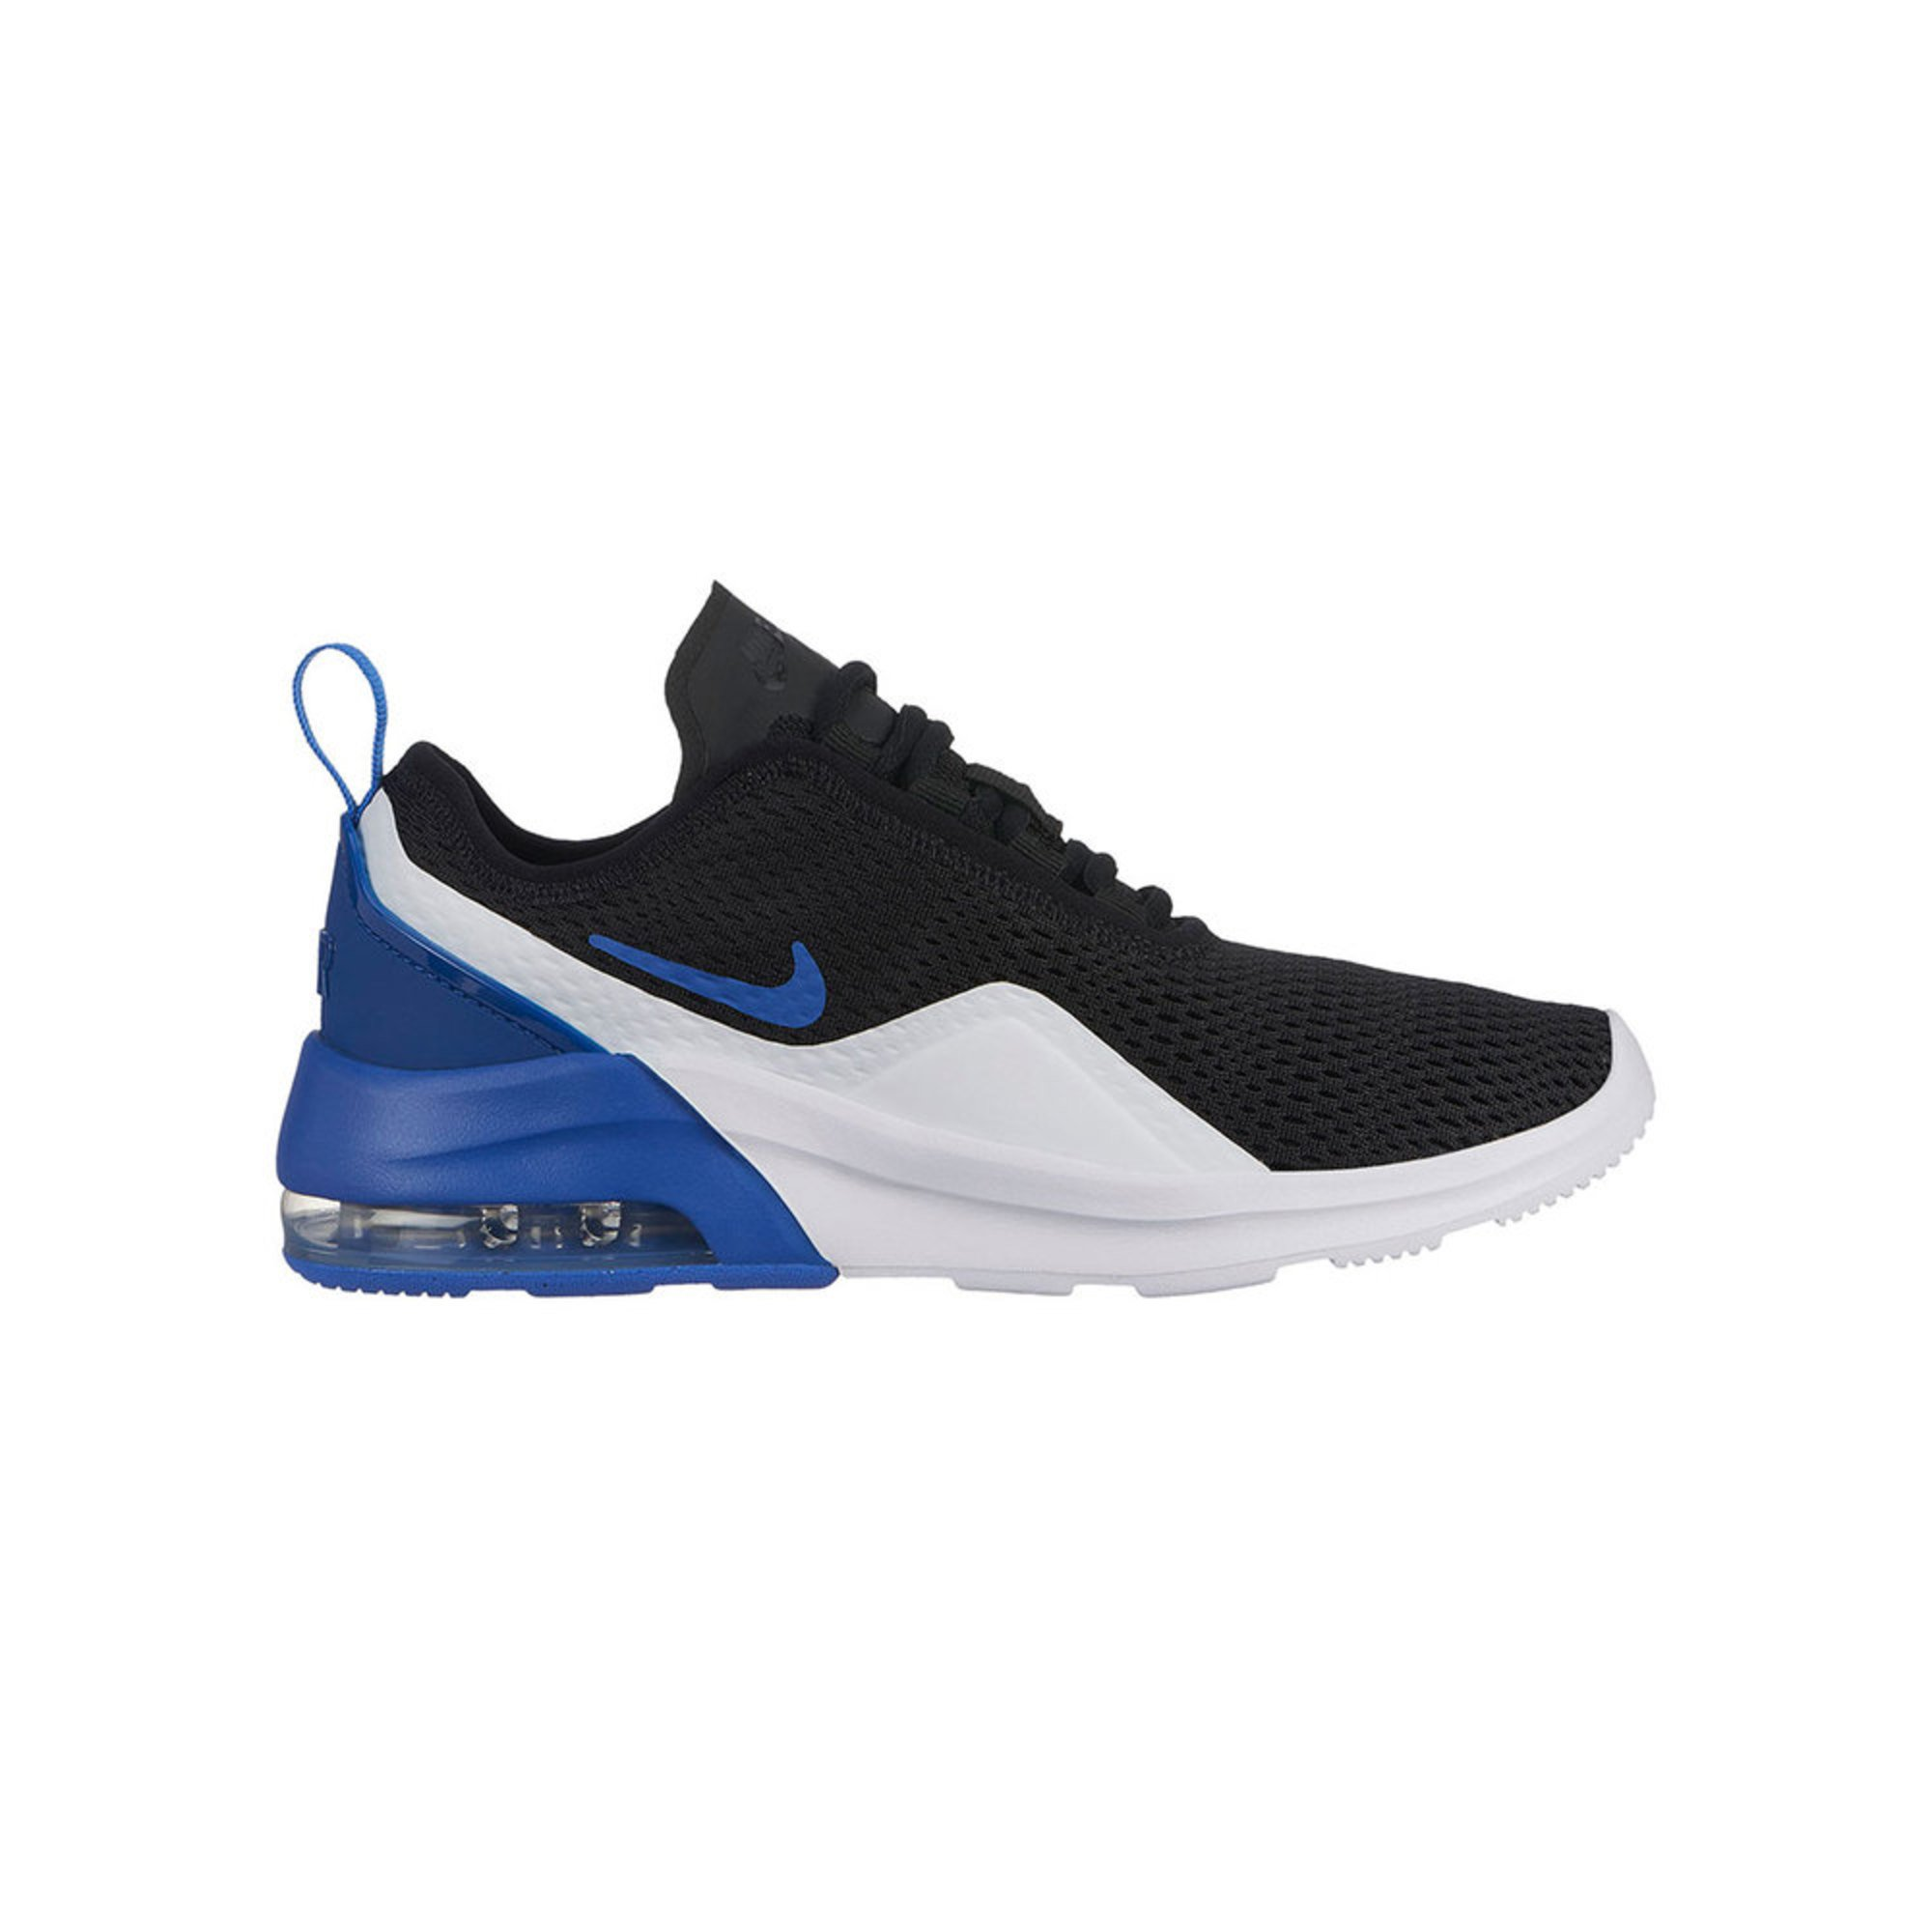 on sale ec5ab c74d1 Nike. Nike Boys Air Max Motion 2 Running Shoe (Youth)